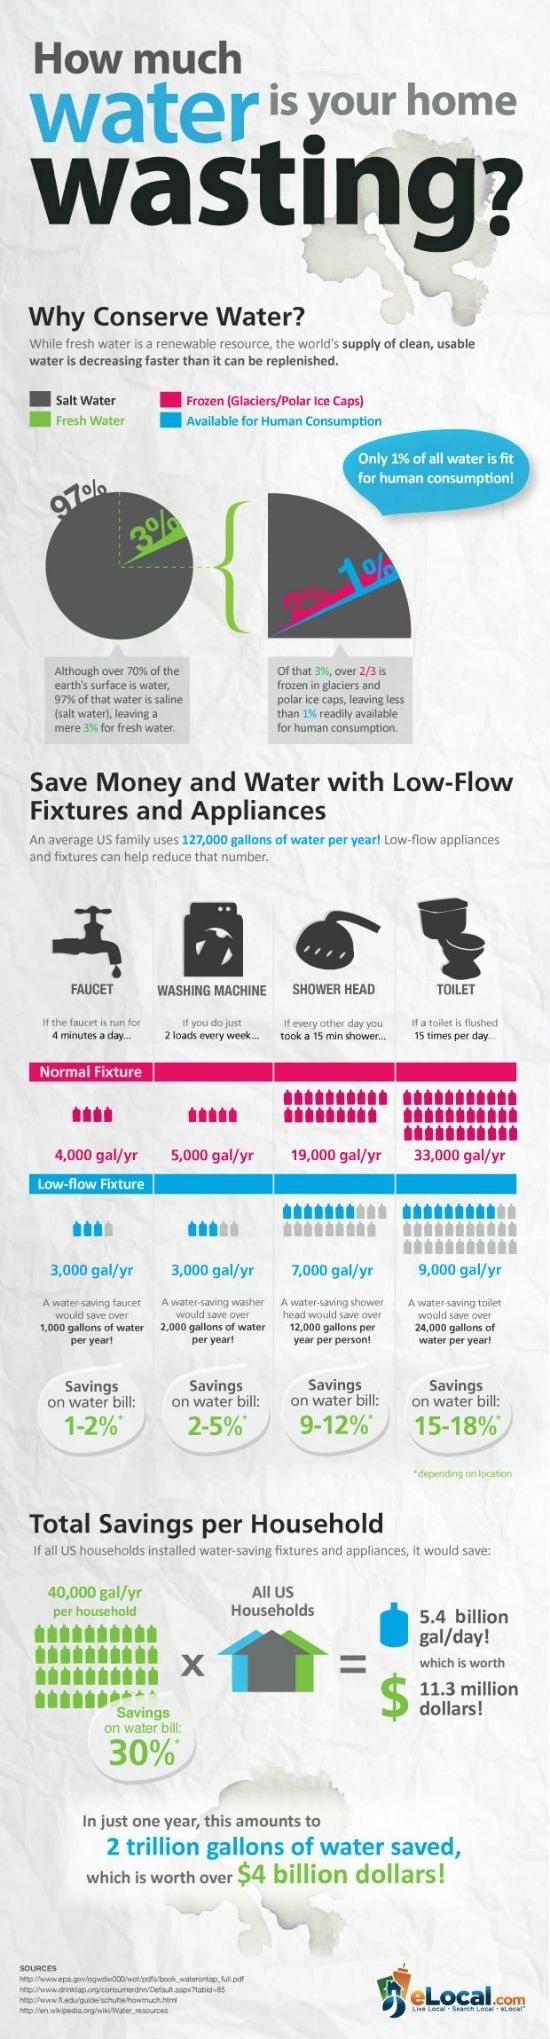 How Much Water is Your Home Wasting? | The Happy Housewife